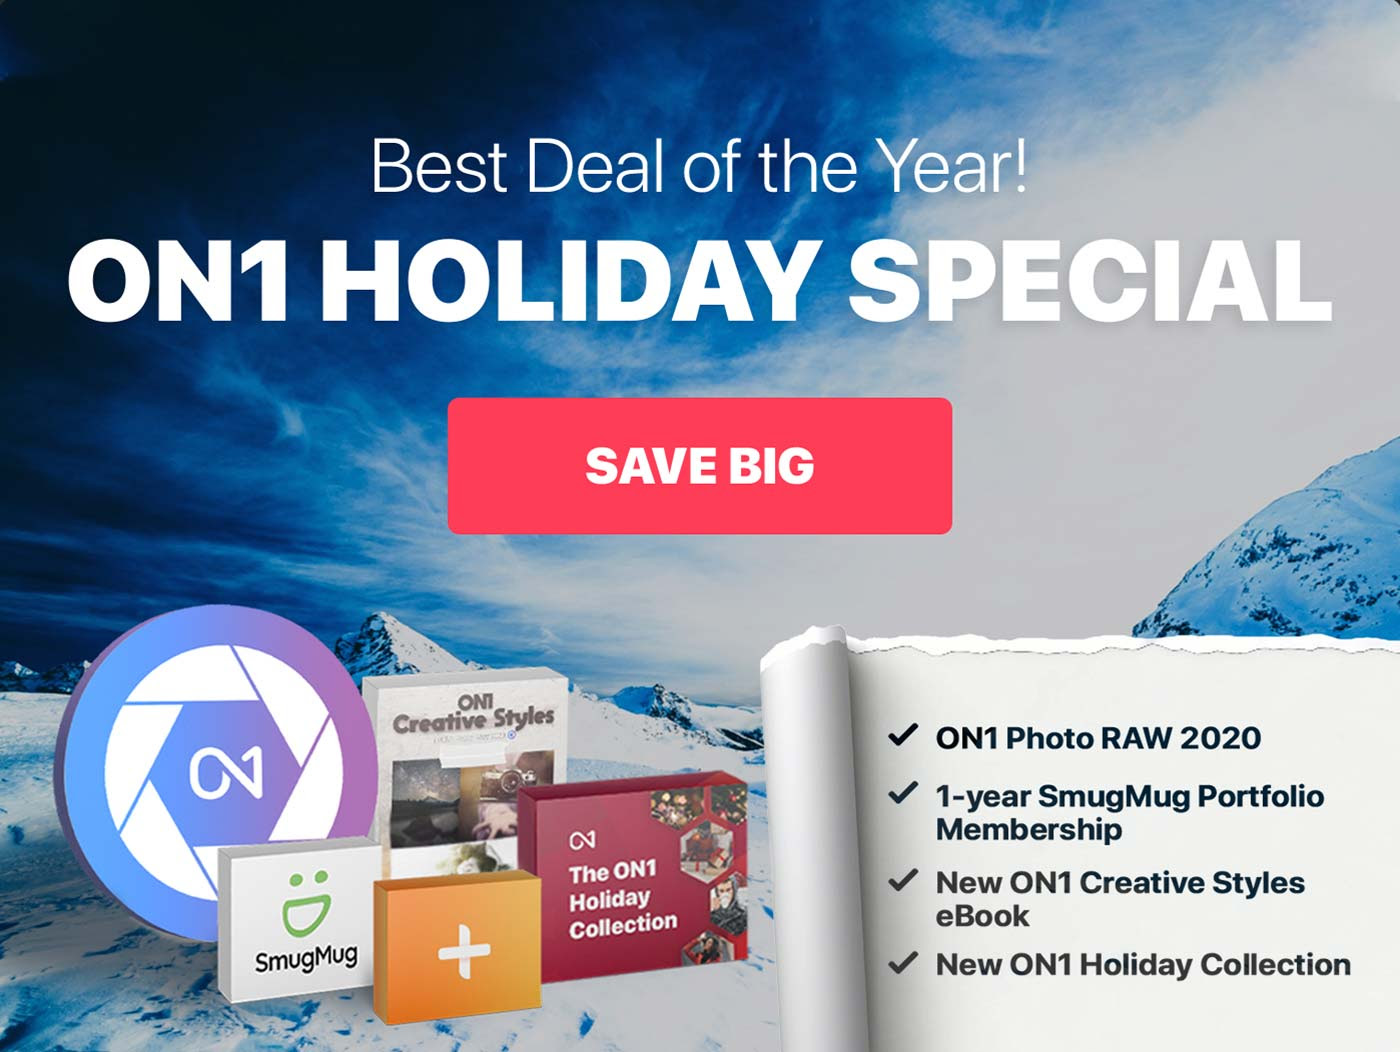 ON1 Most Popular Holiday Special Bundle